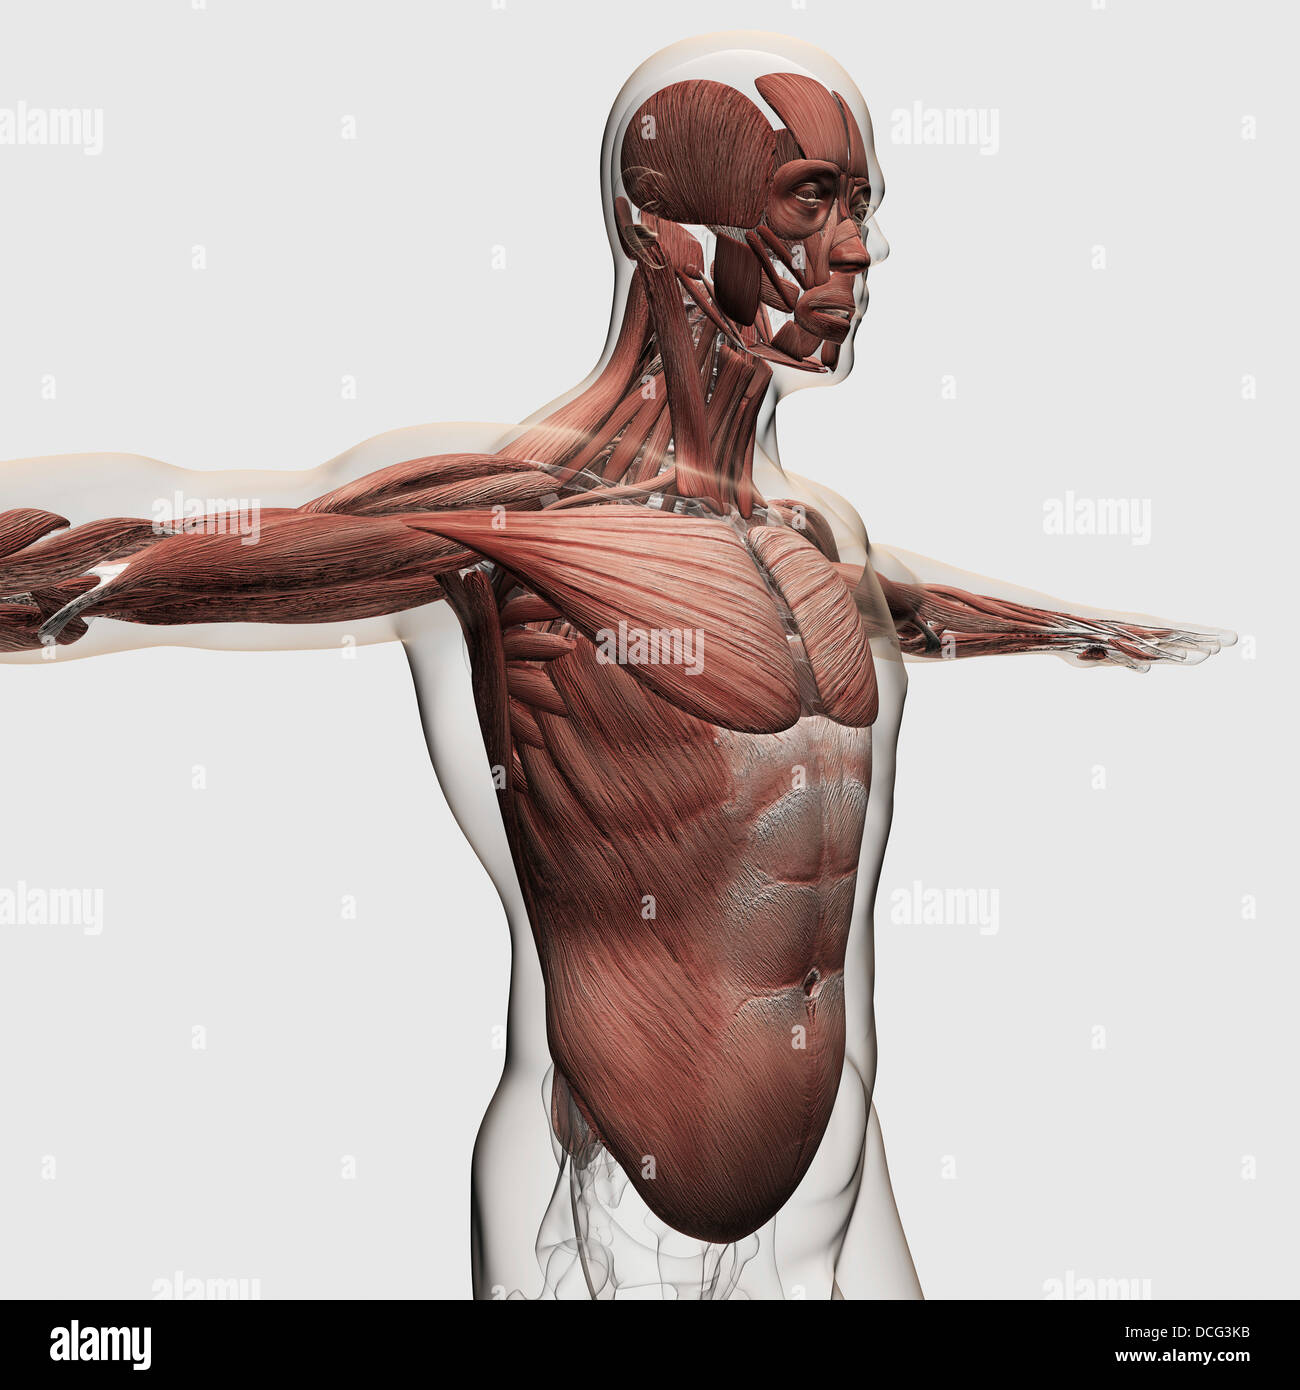 Anatomy of male muscles in upper body, side view Stock Photo ...